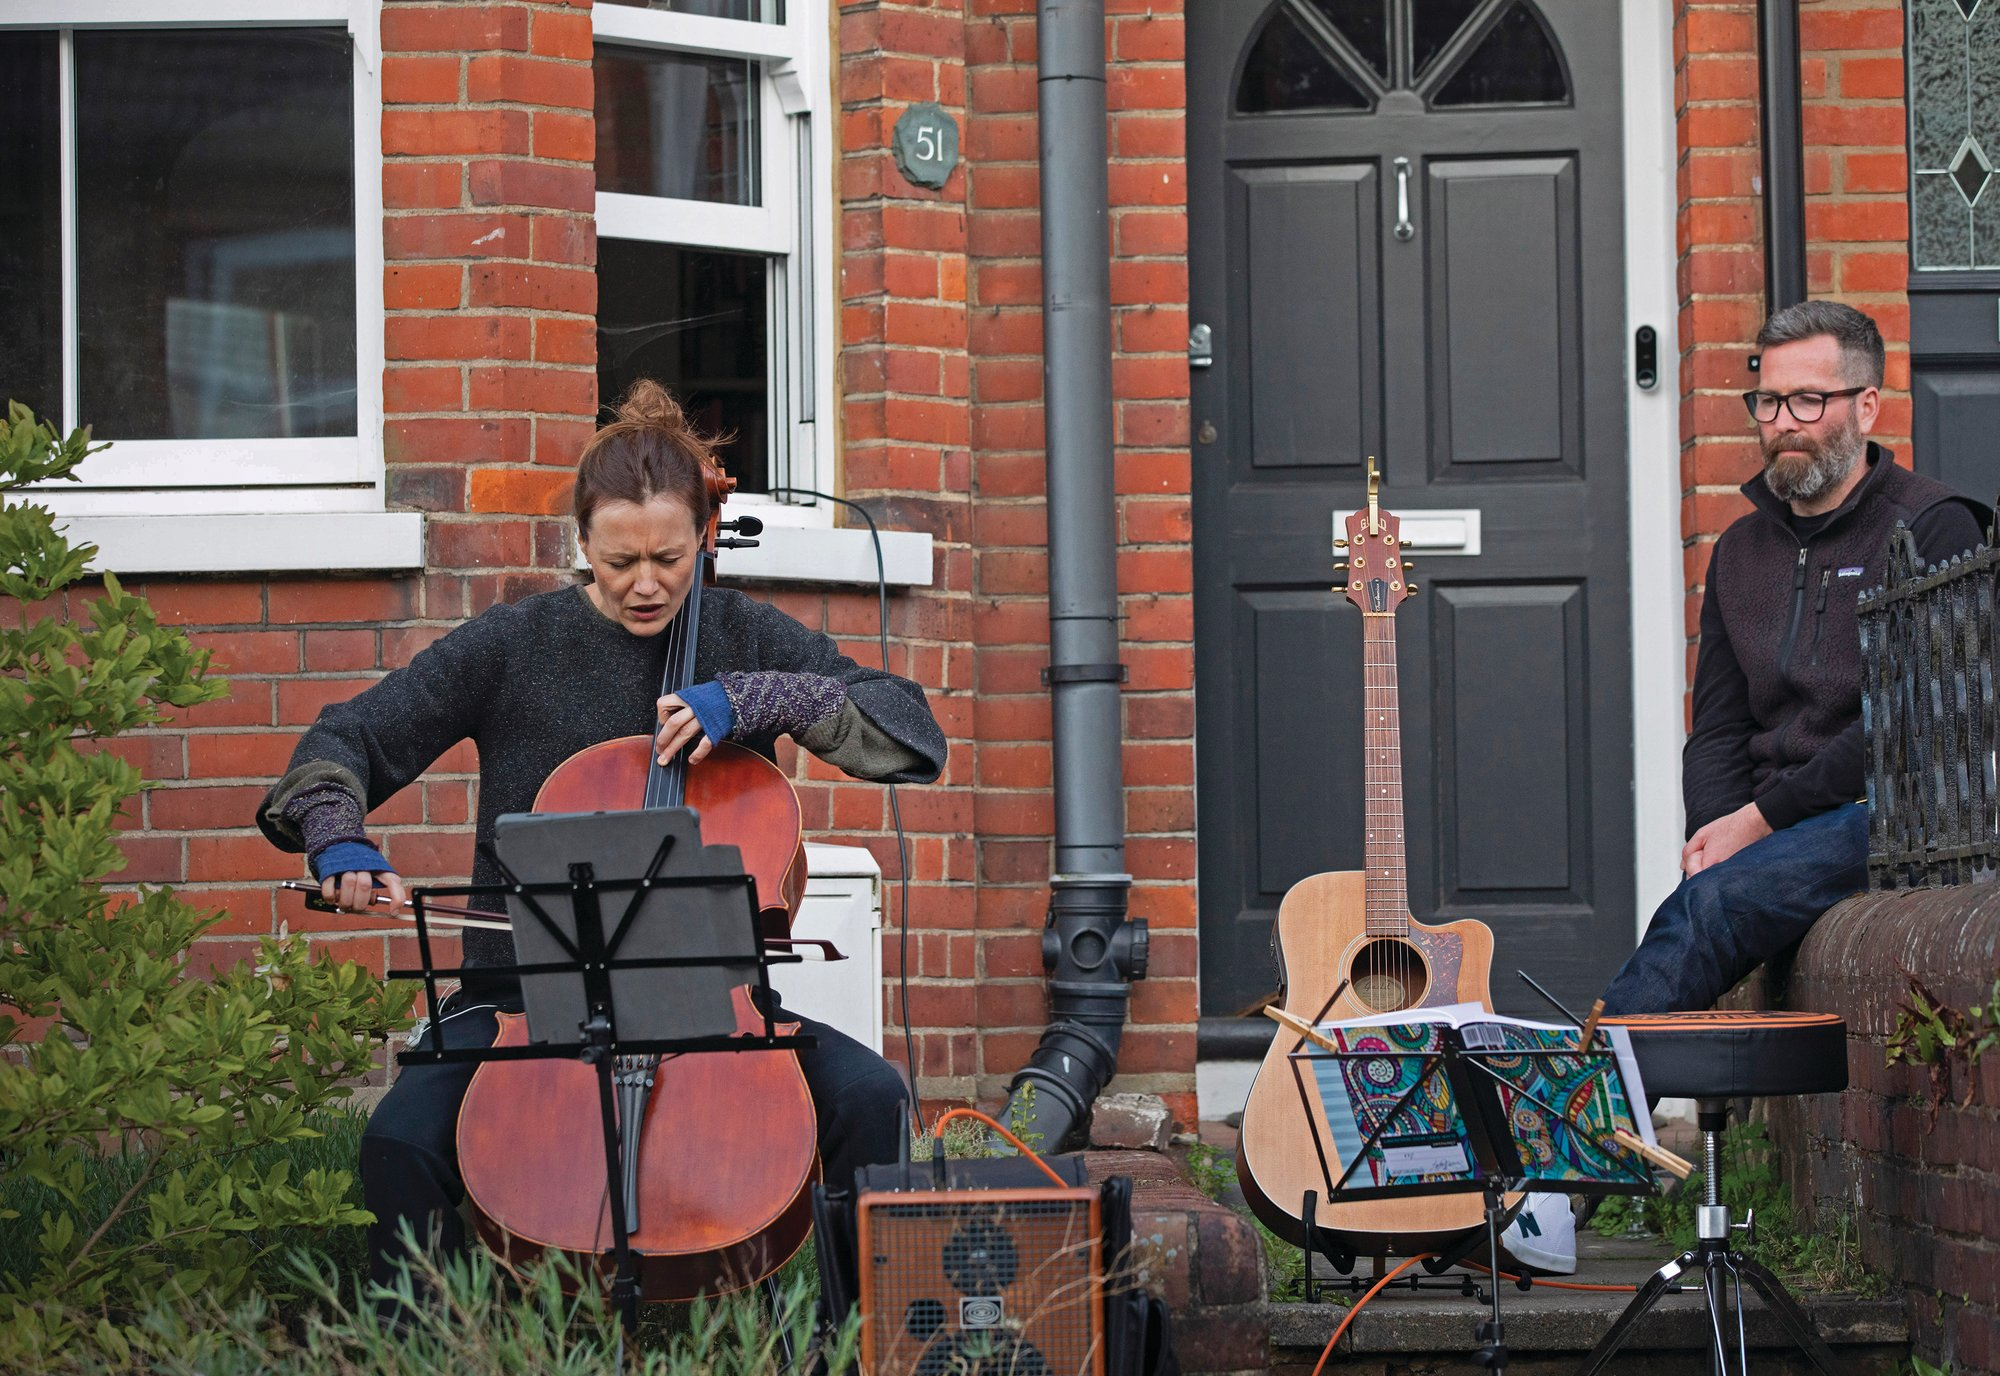 Clare O'Connell, a concert cellist, and her husband, Dom Shovelton, a composer, offer an impromptu concert from their front door as neighbors flock to listen while observing social distancing on the street in Berkhamsted, London, on May 2. As the coronavirus lockdown tightened and people shut their doors, neighbors began introducing themselves to one another online, building a community on the street.